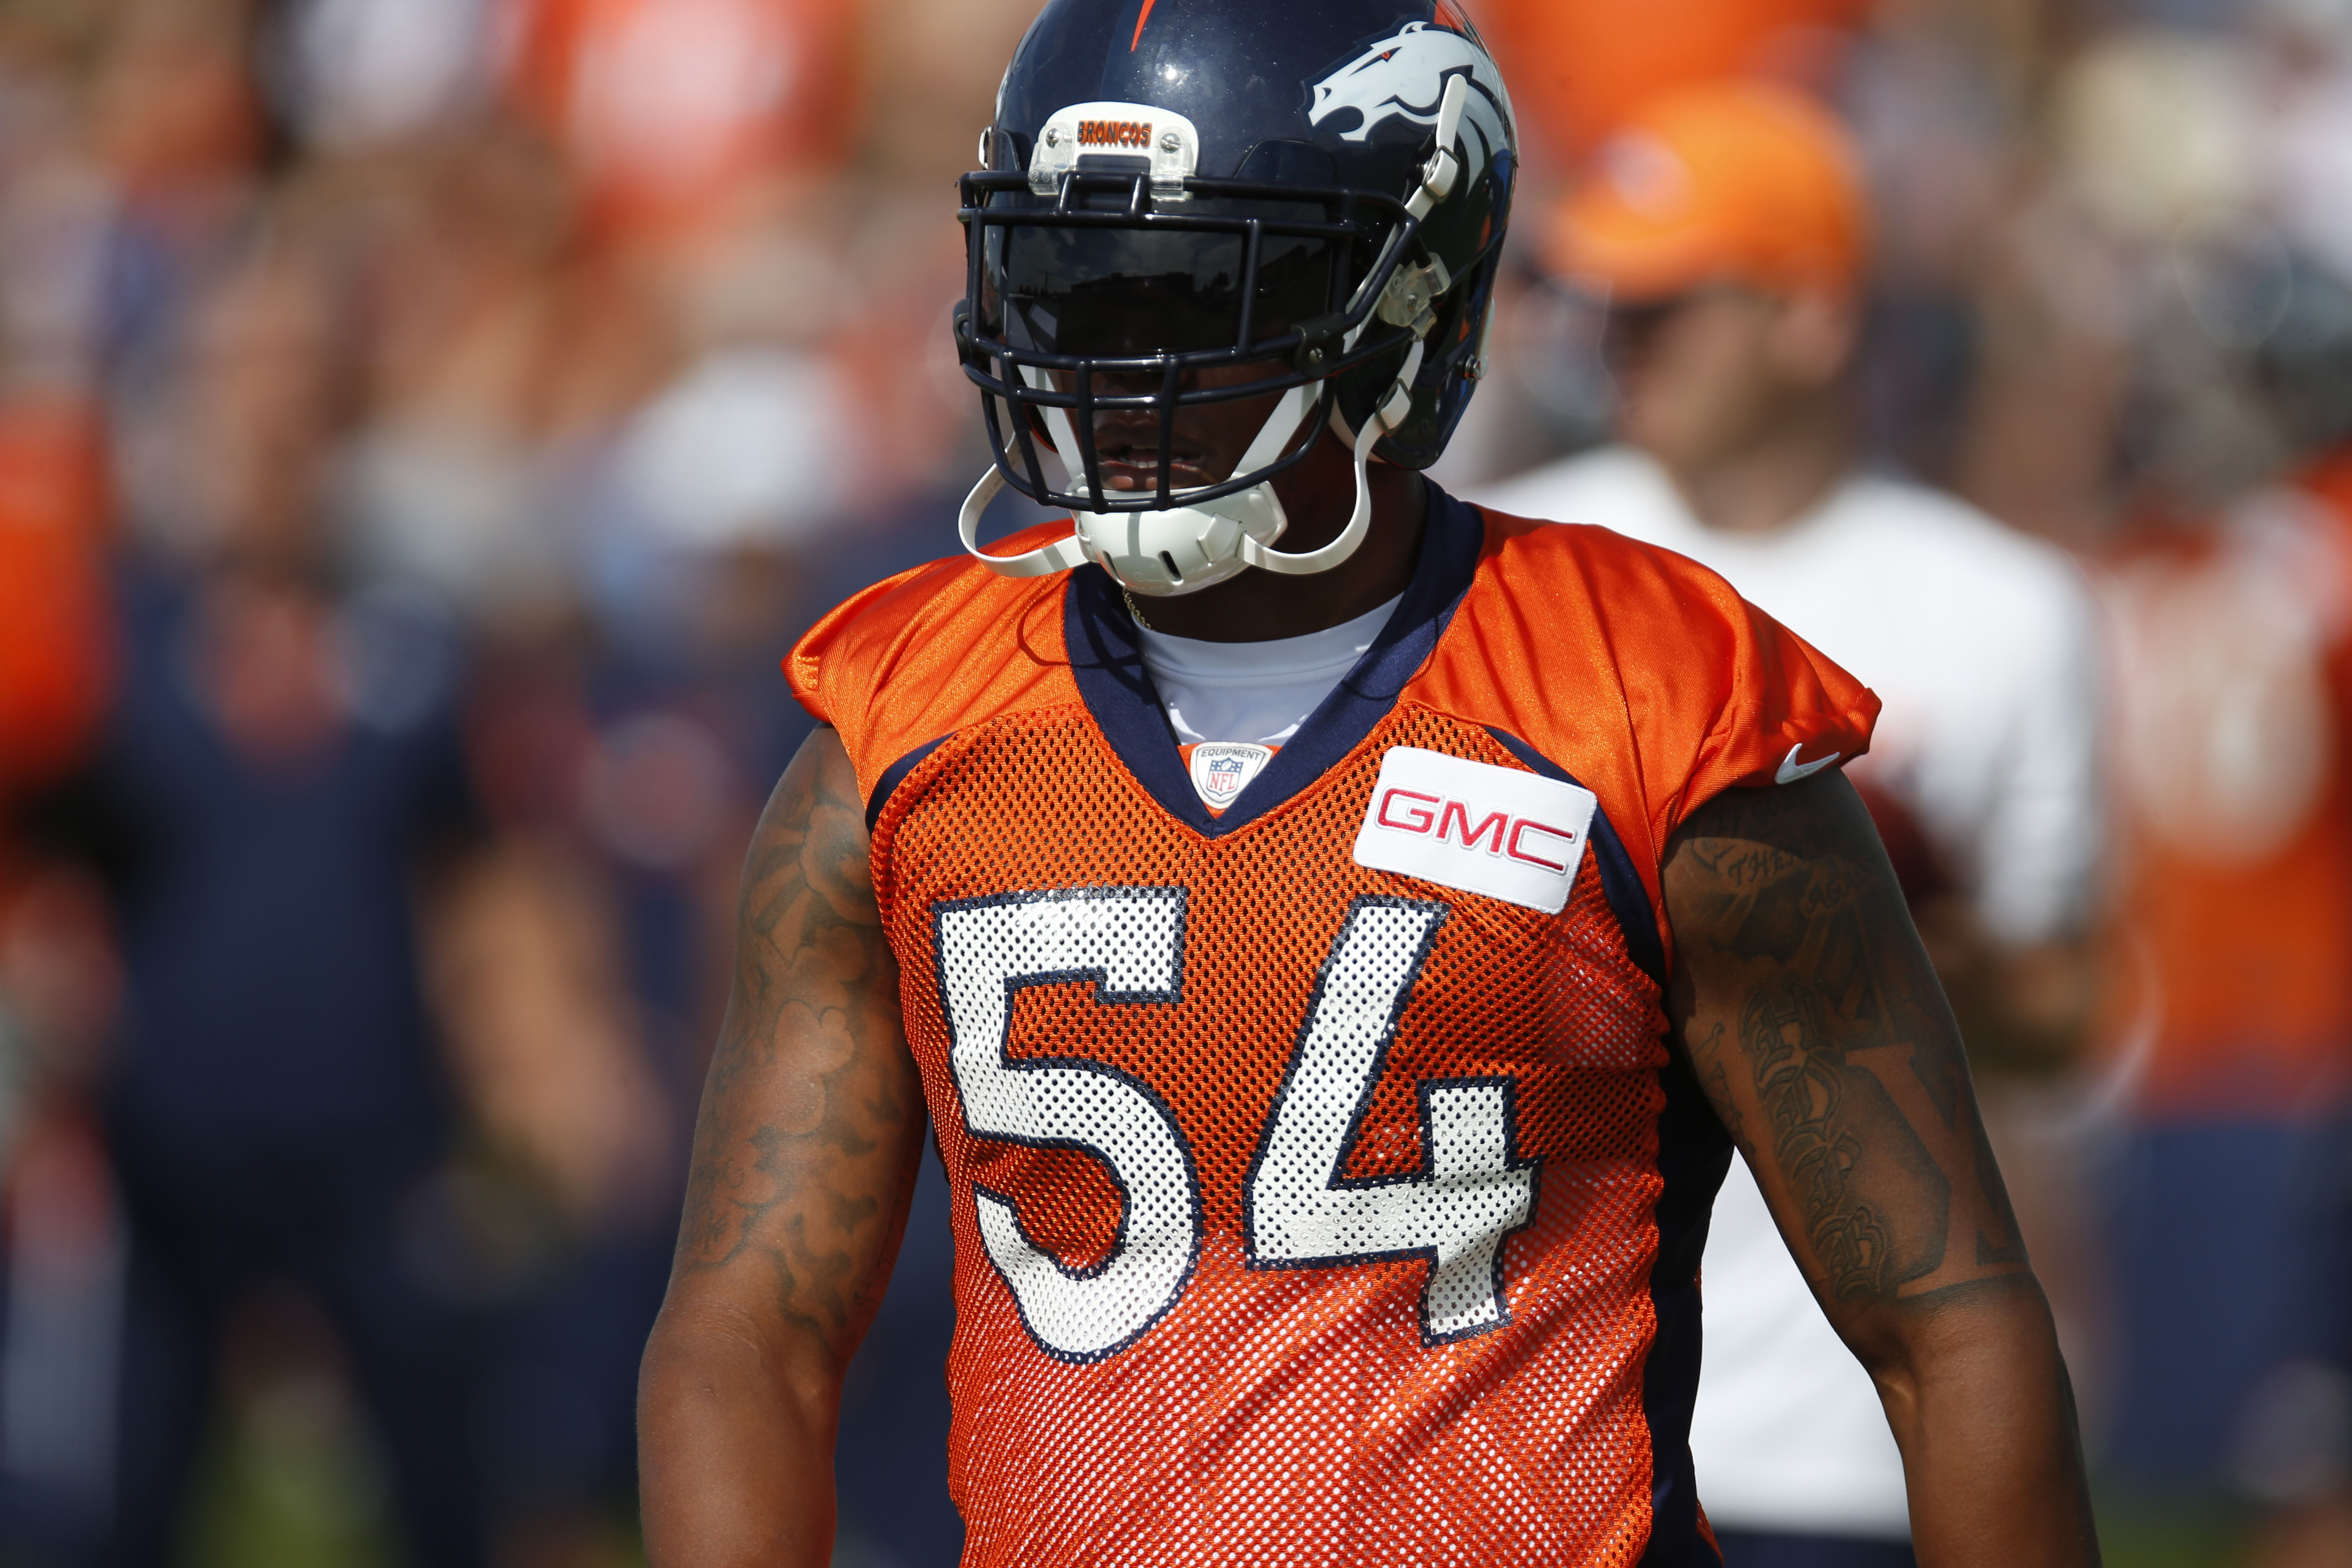 In this photo taken Friday, Aug. 7, 2015, Denver Broncos outside linebacker Brandon Marshall takes a break from drills at the team's NFL football training camp in Englewood, Colo. Marshall, who is the top tackler on the top-ranked defense in the NFL, coul